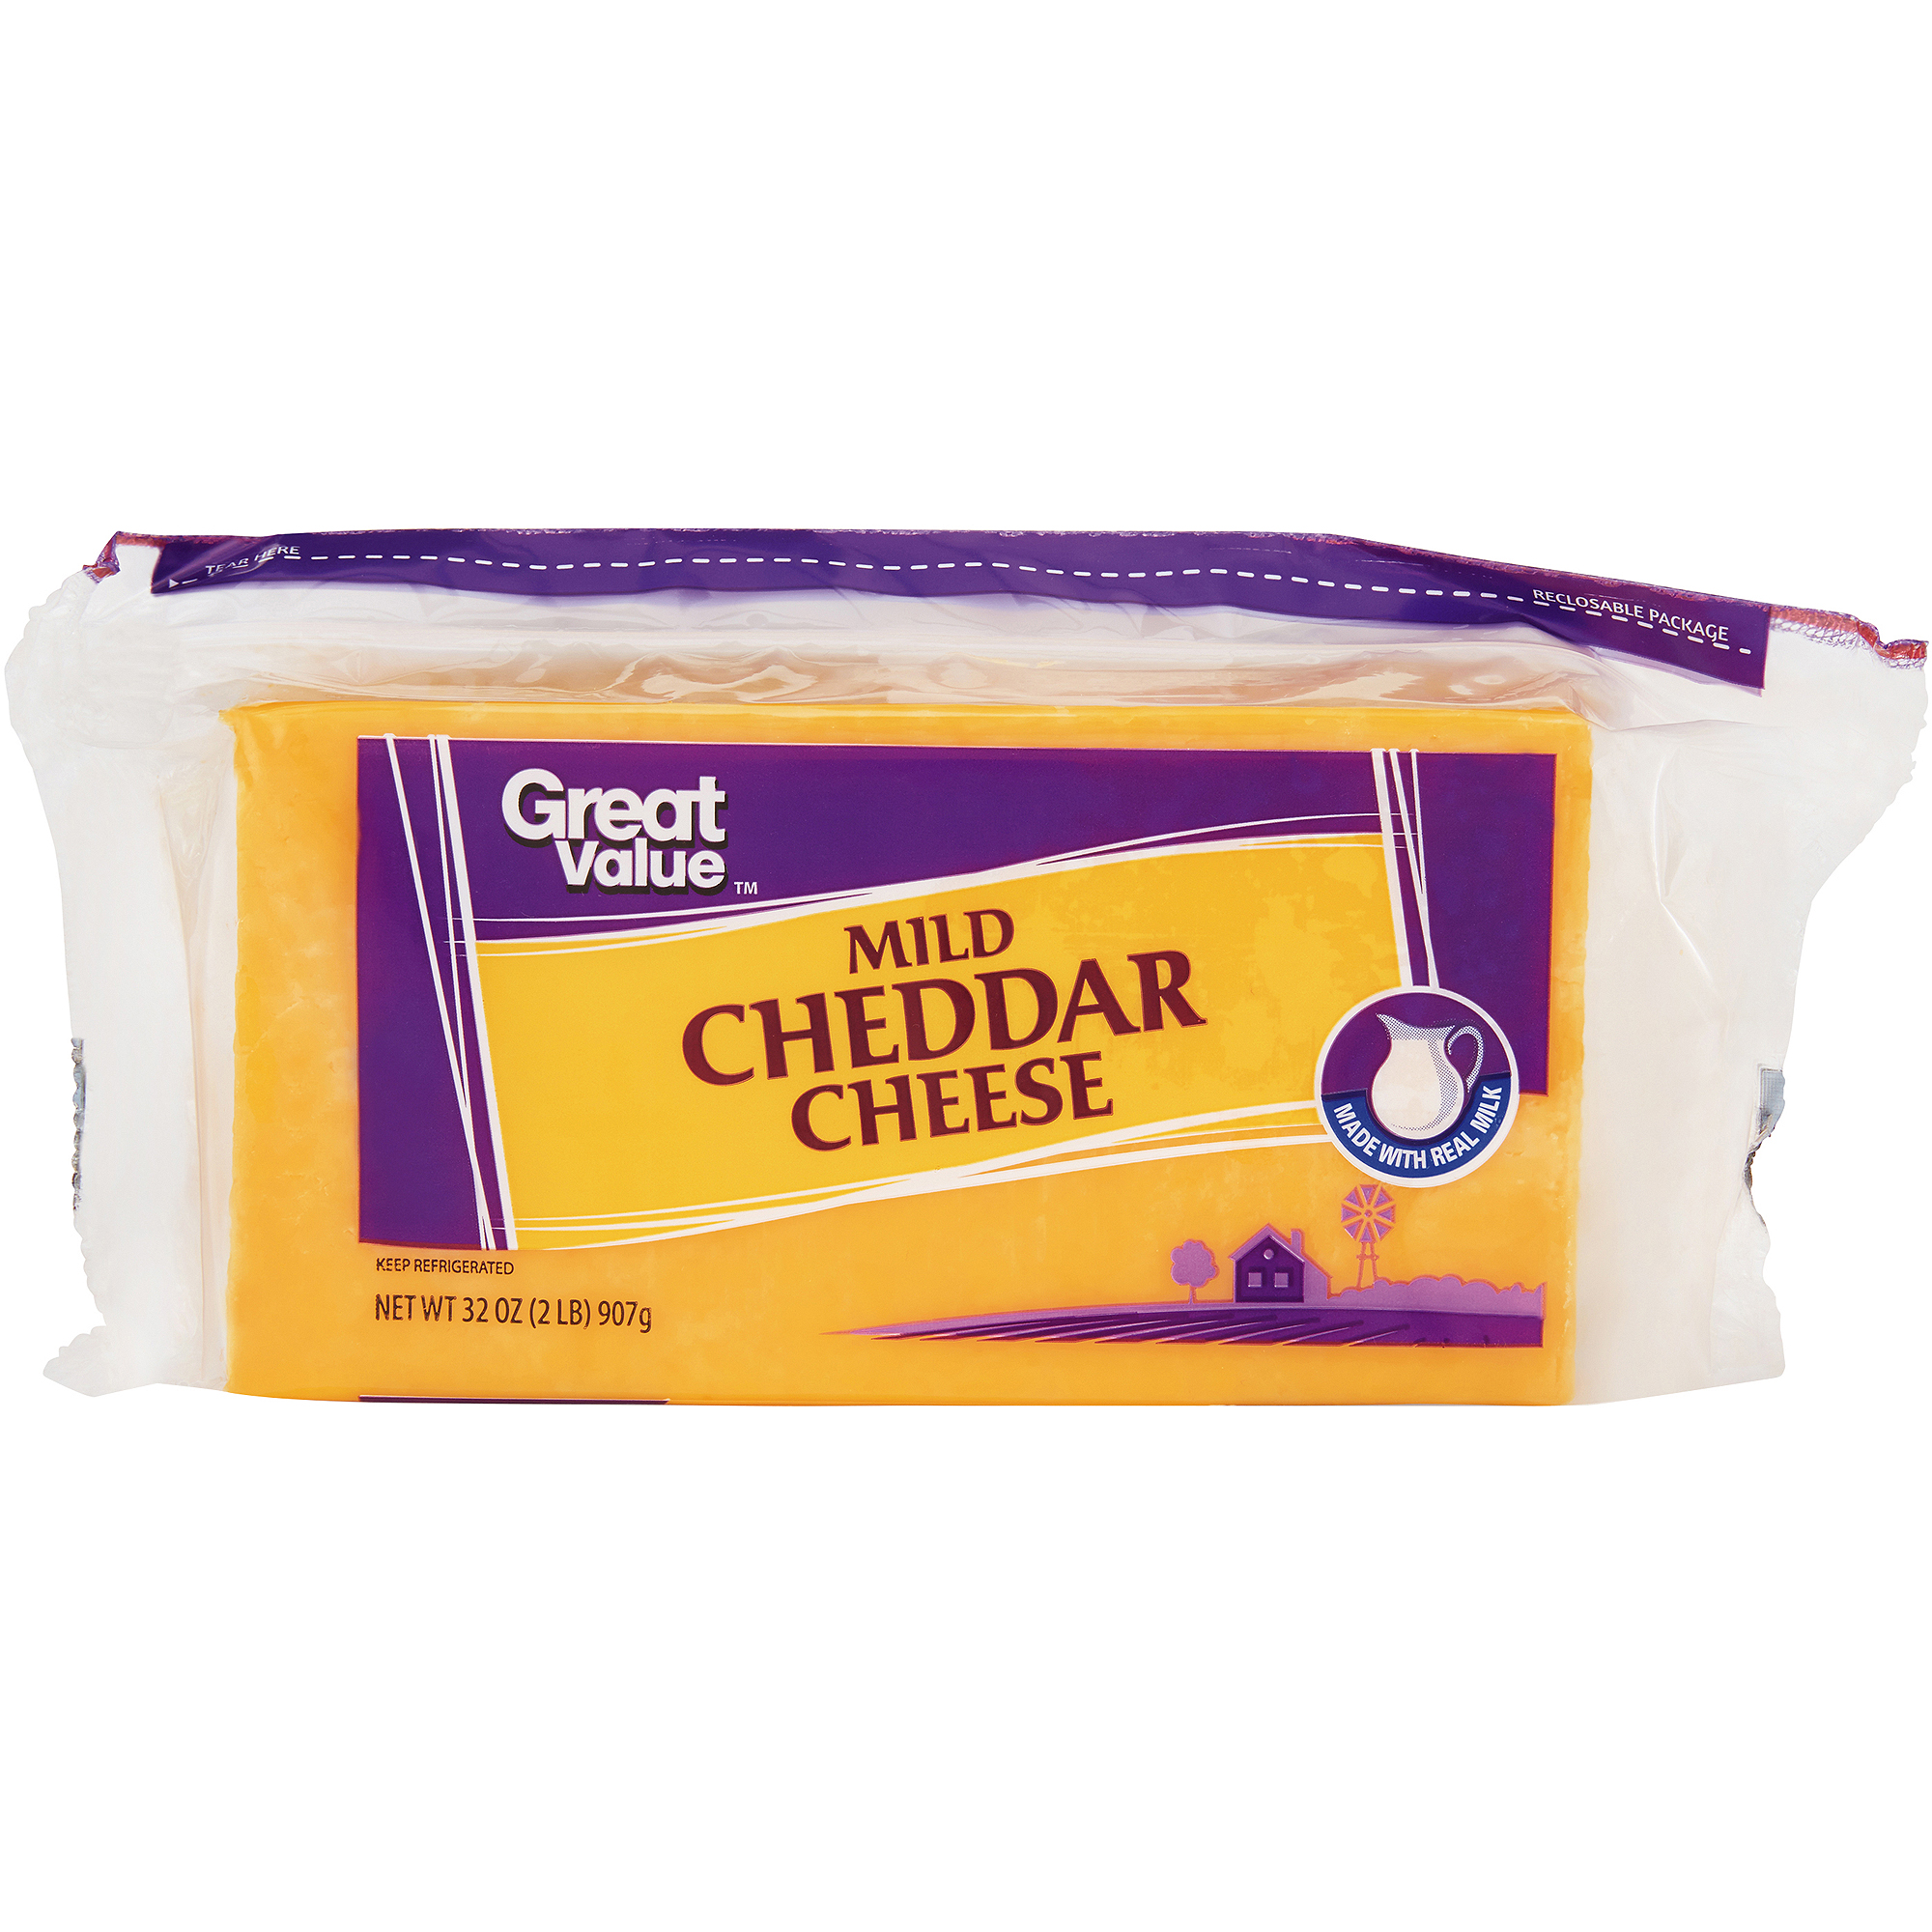 Great Value Mild Cheddar Cheese, 32 oz